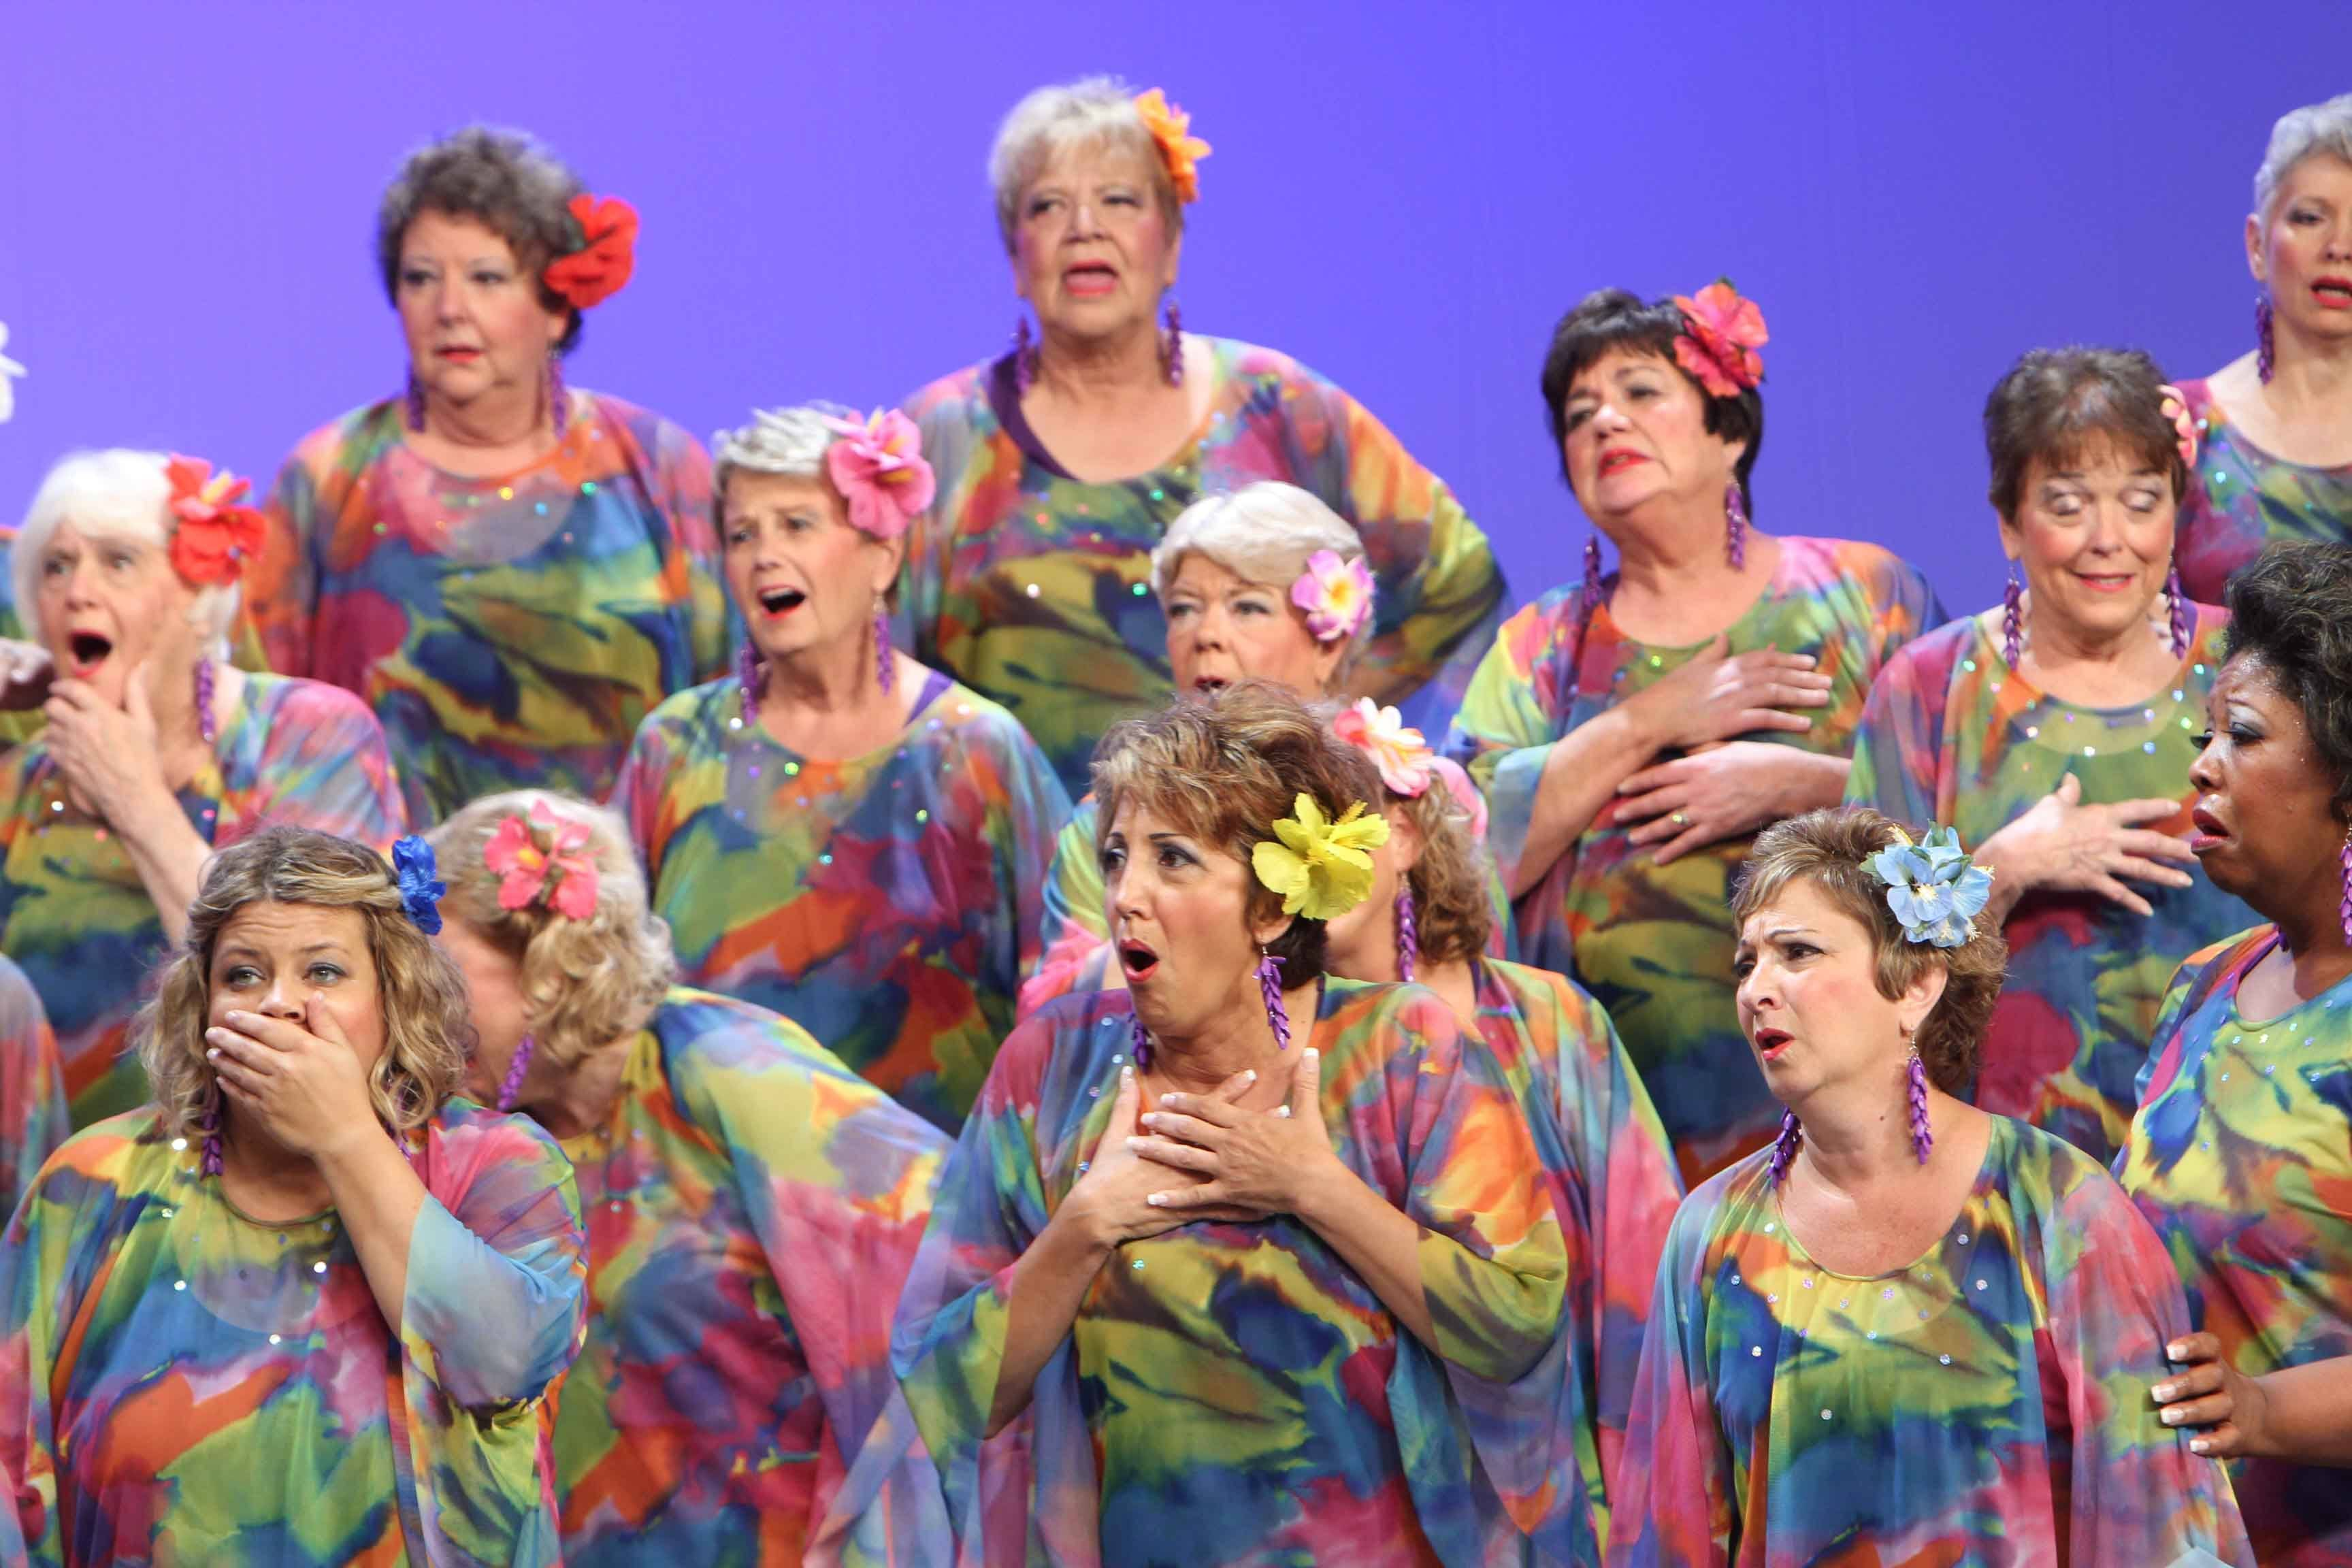 The Choral-Aires Chorus won the Midwest Harmony Region 3 Championship last weekend and now prepare for the Sweet Adelines International contest in Las Vegas.